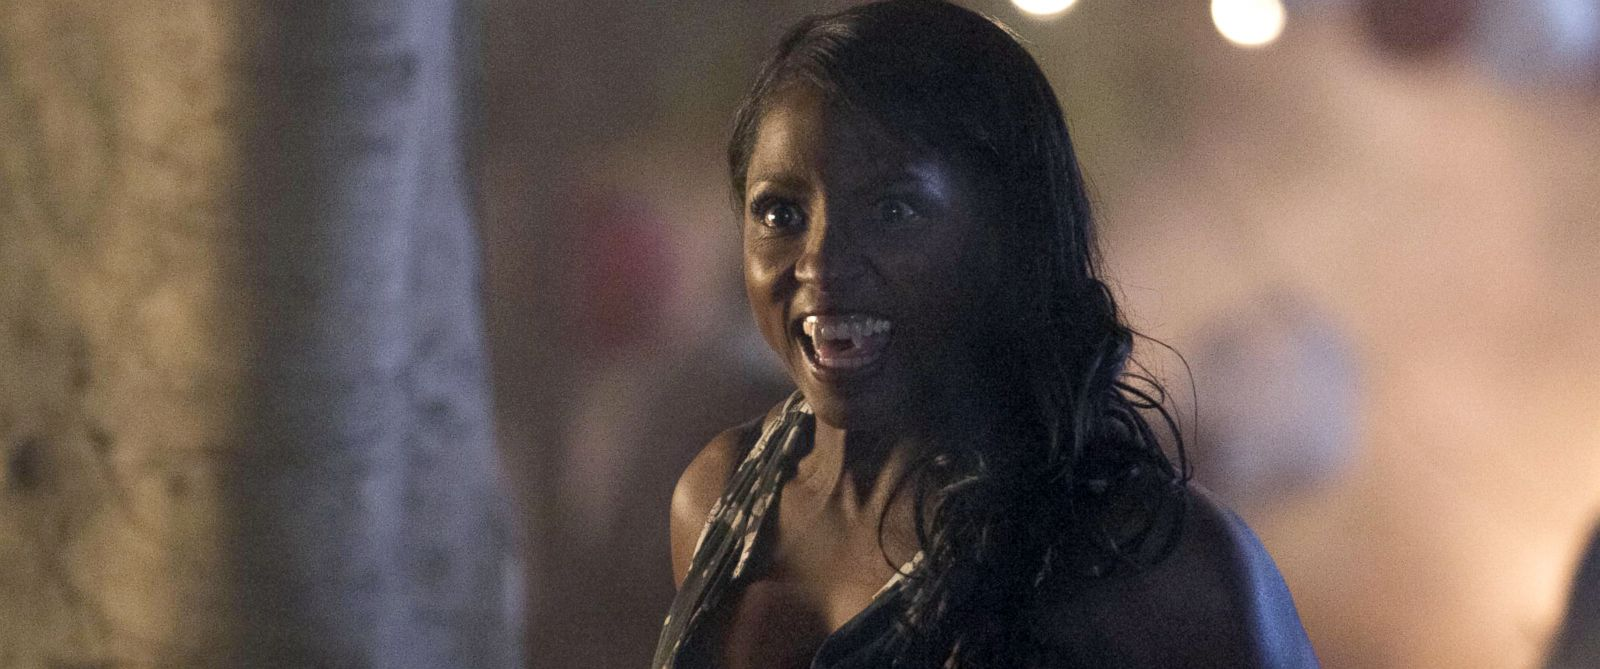 PHOTO: Rutina Wesley, as Tara, in the season 7 premiere of True Blood.